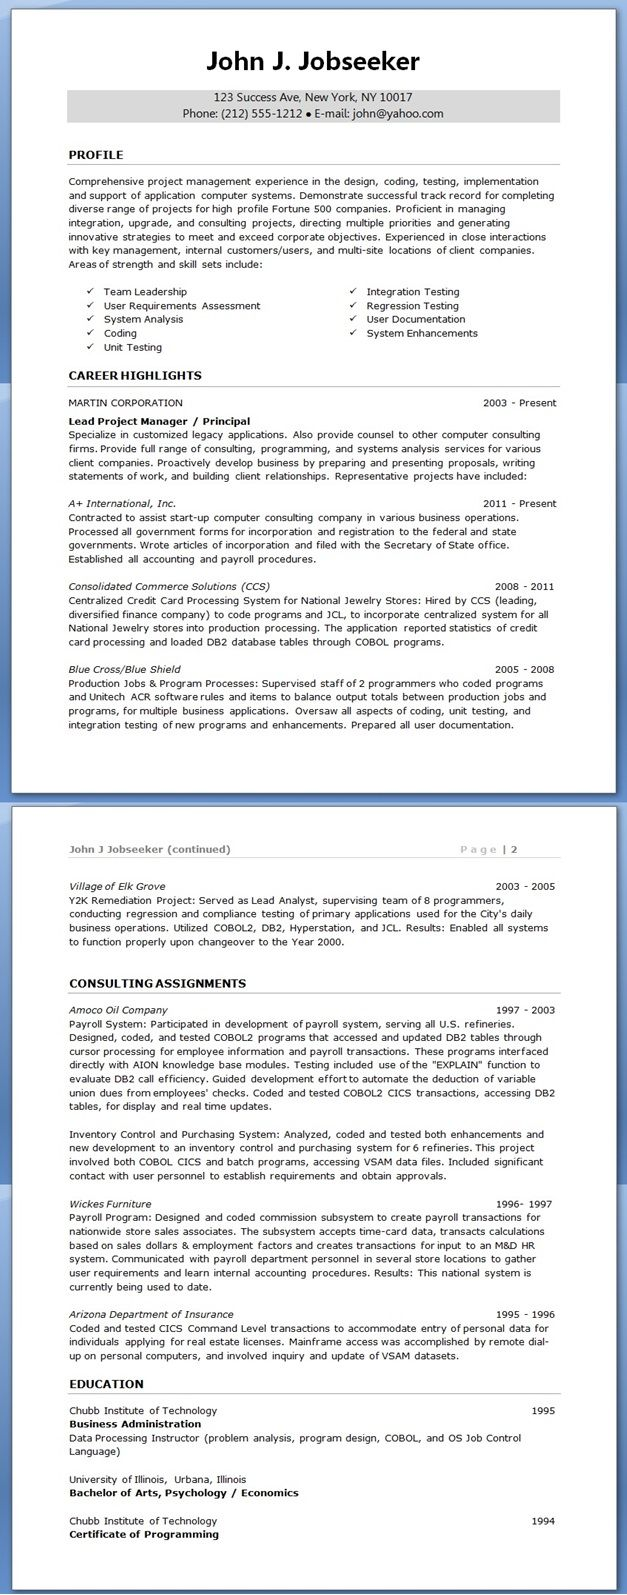 Project manager resume creative resume design templates - Project management office objectives ...